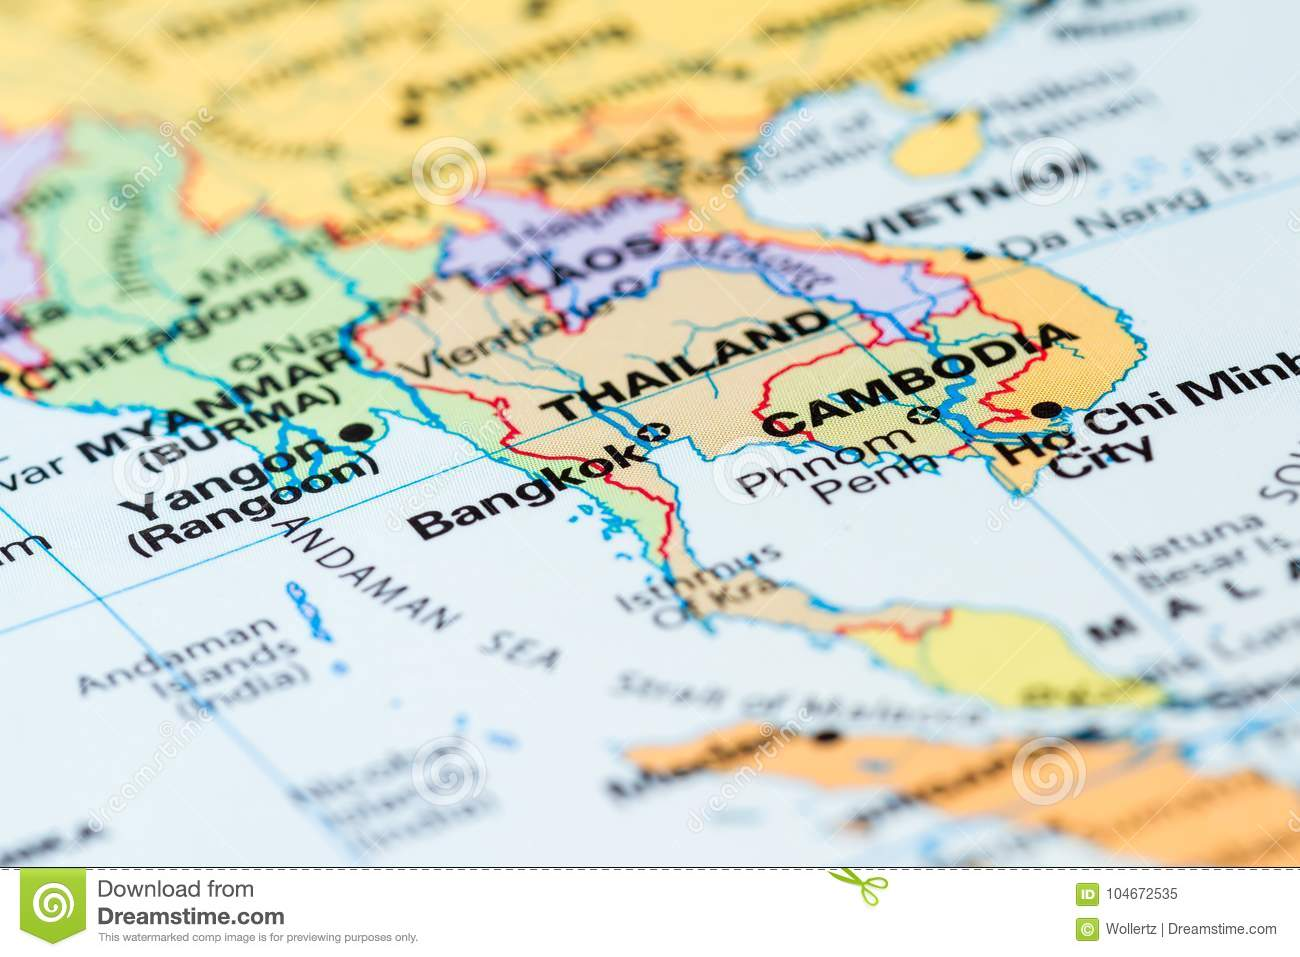 Thailand on a map stock image. Image of detail, region ...